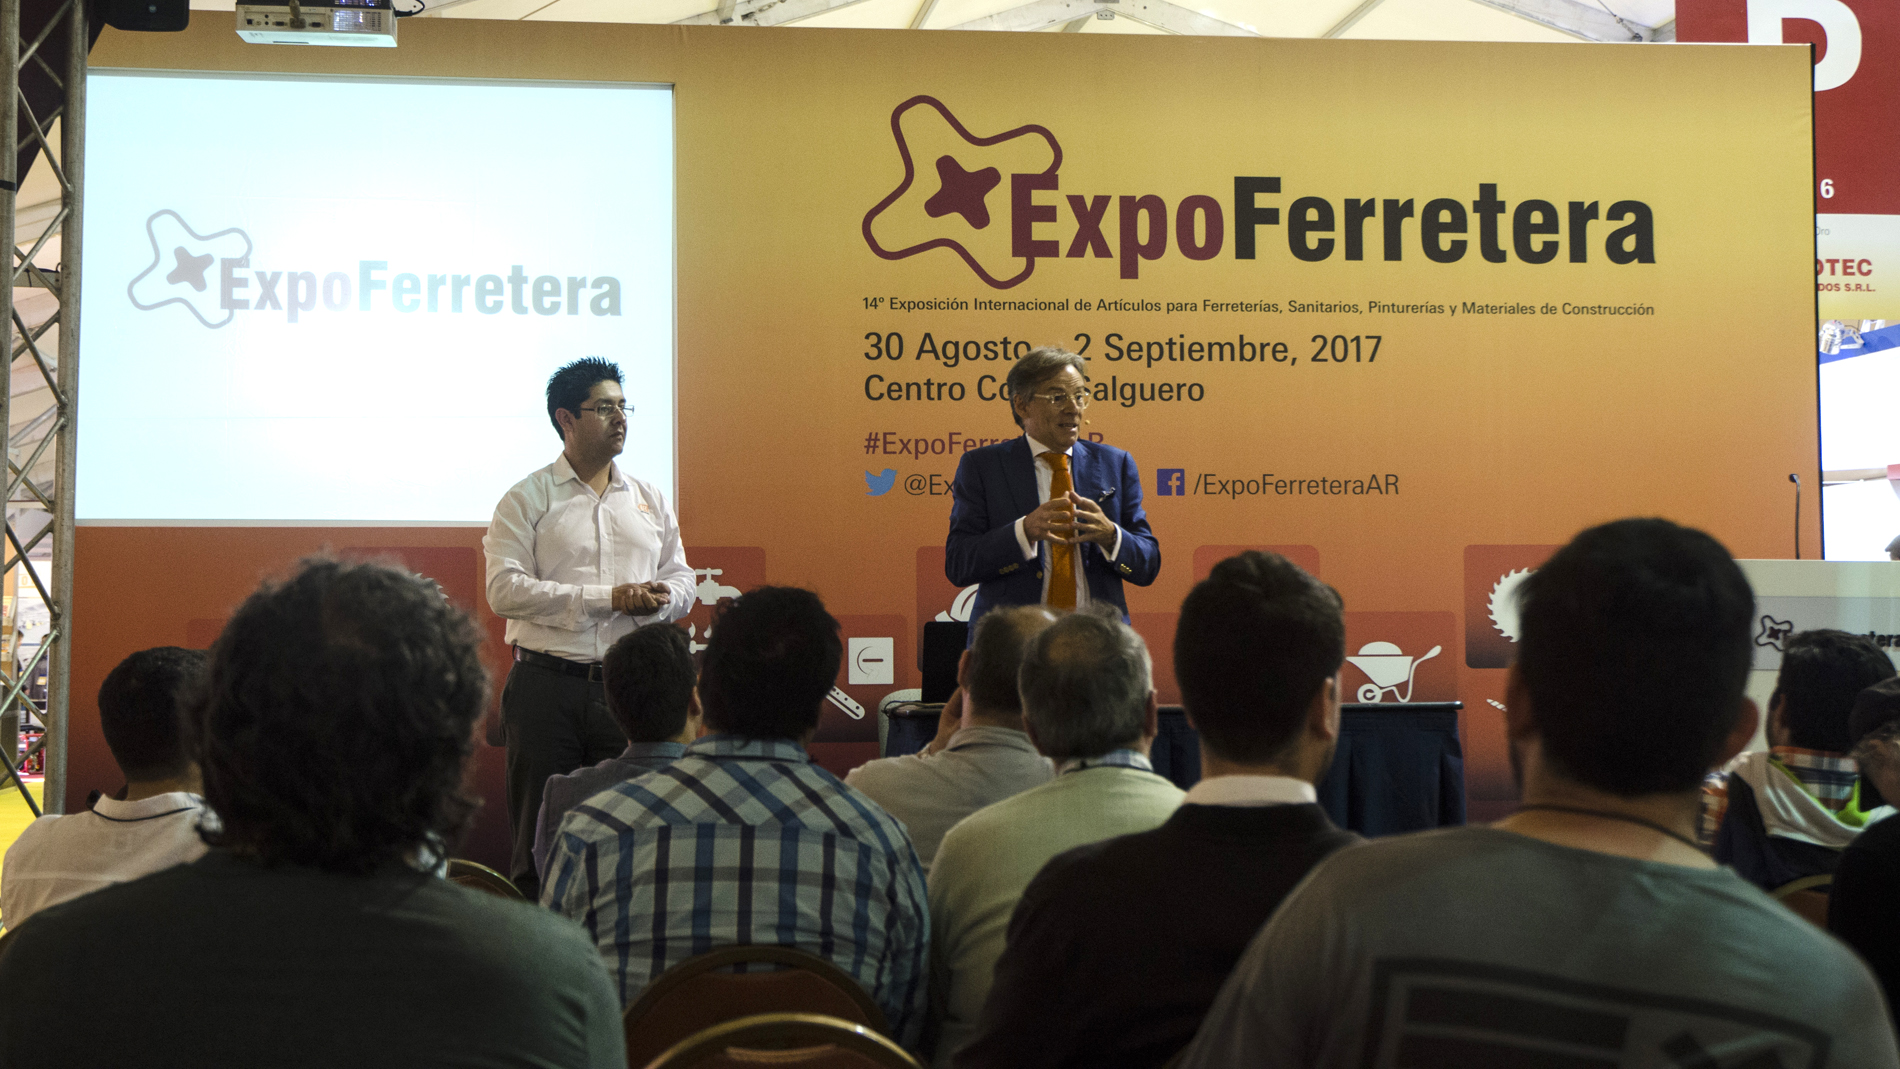 Expoferretera: Events